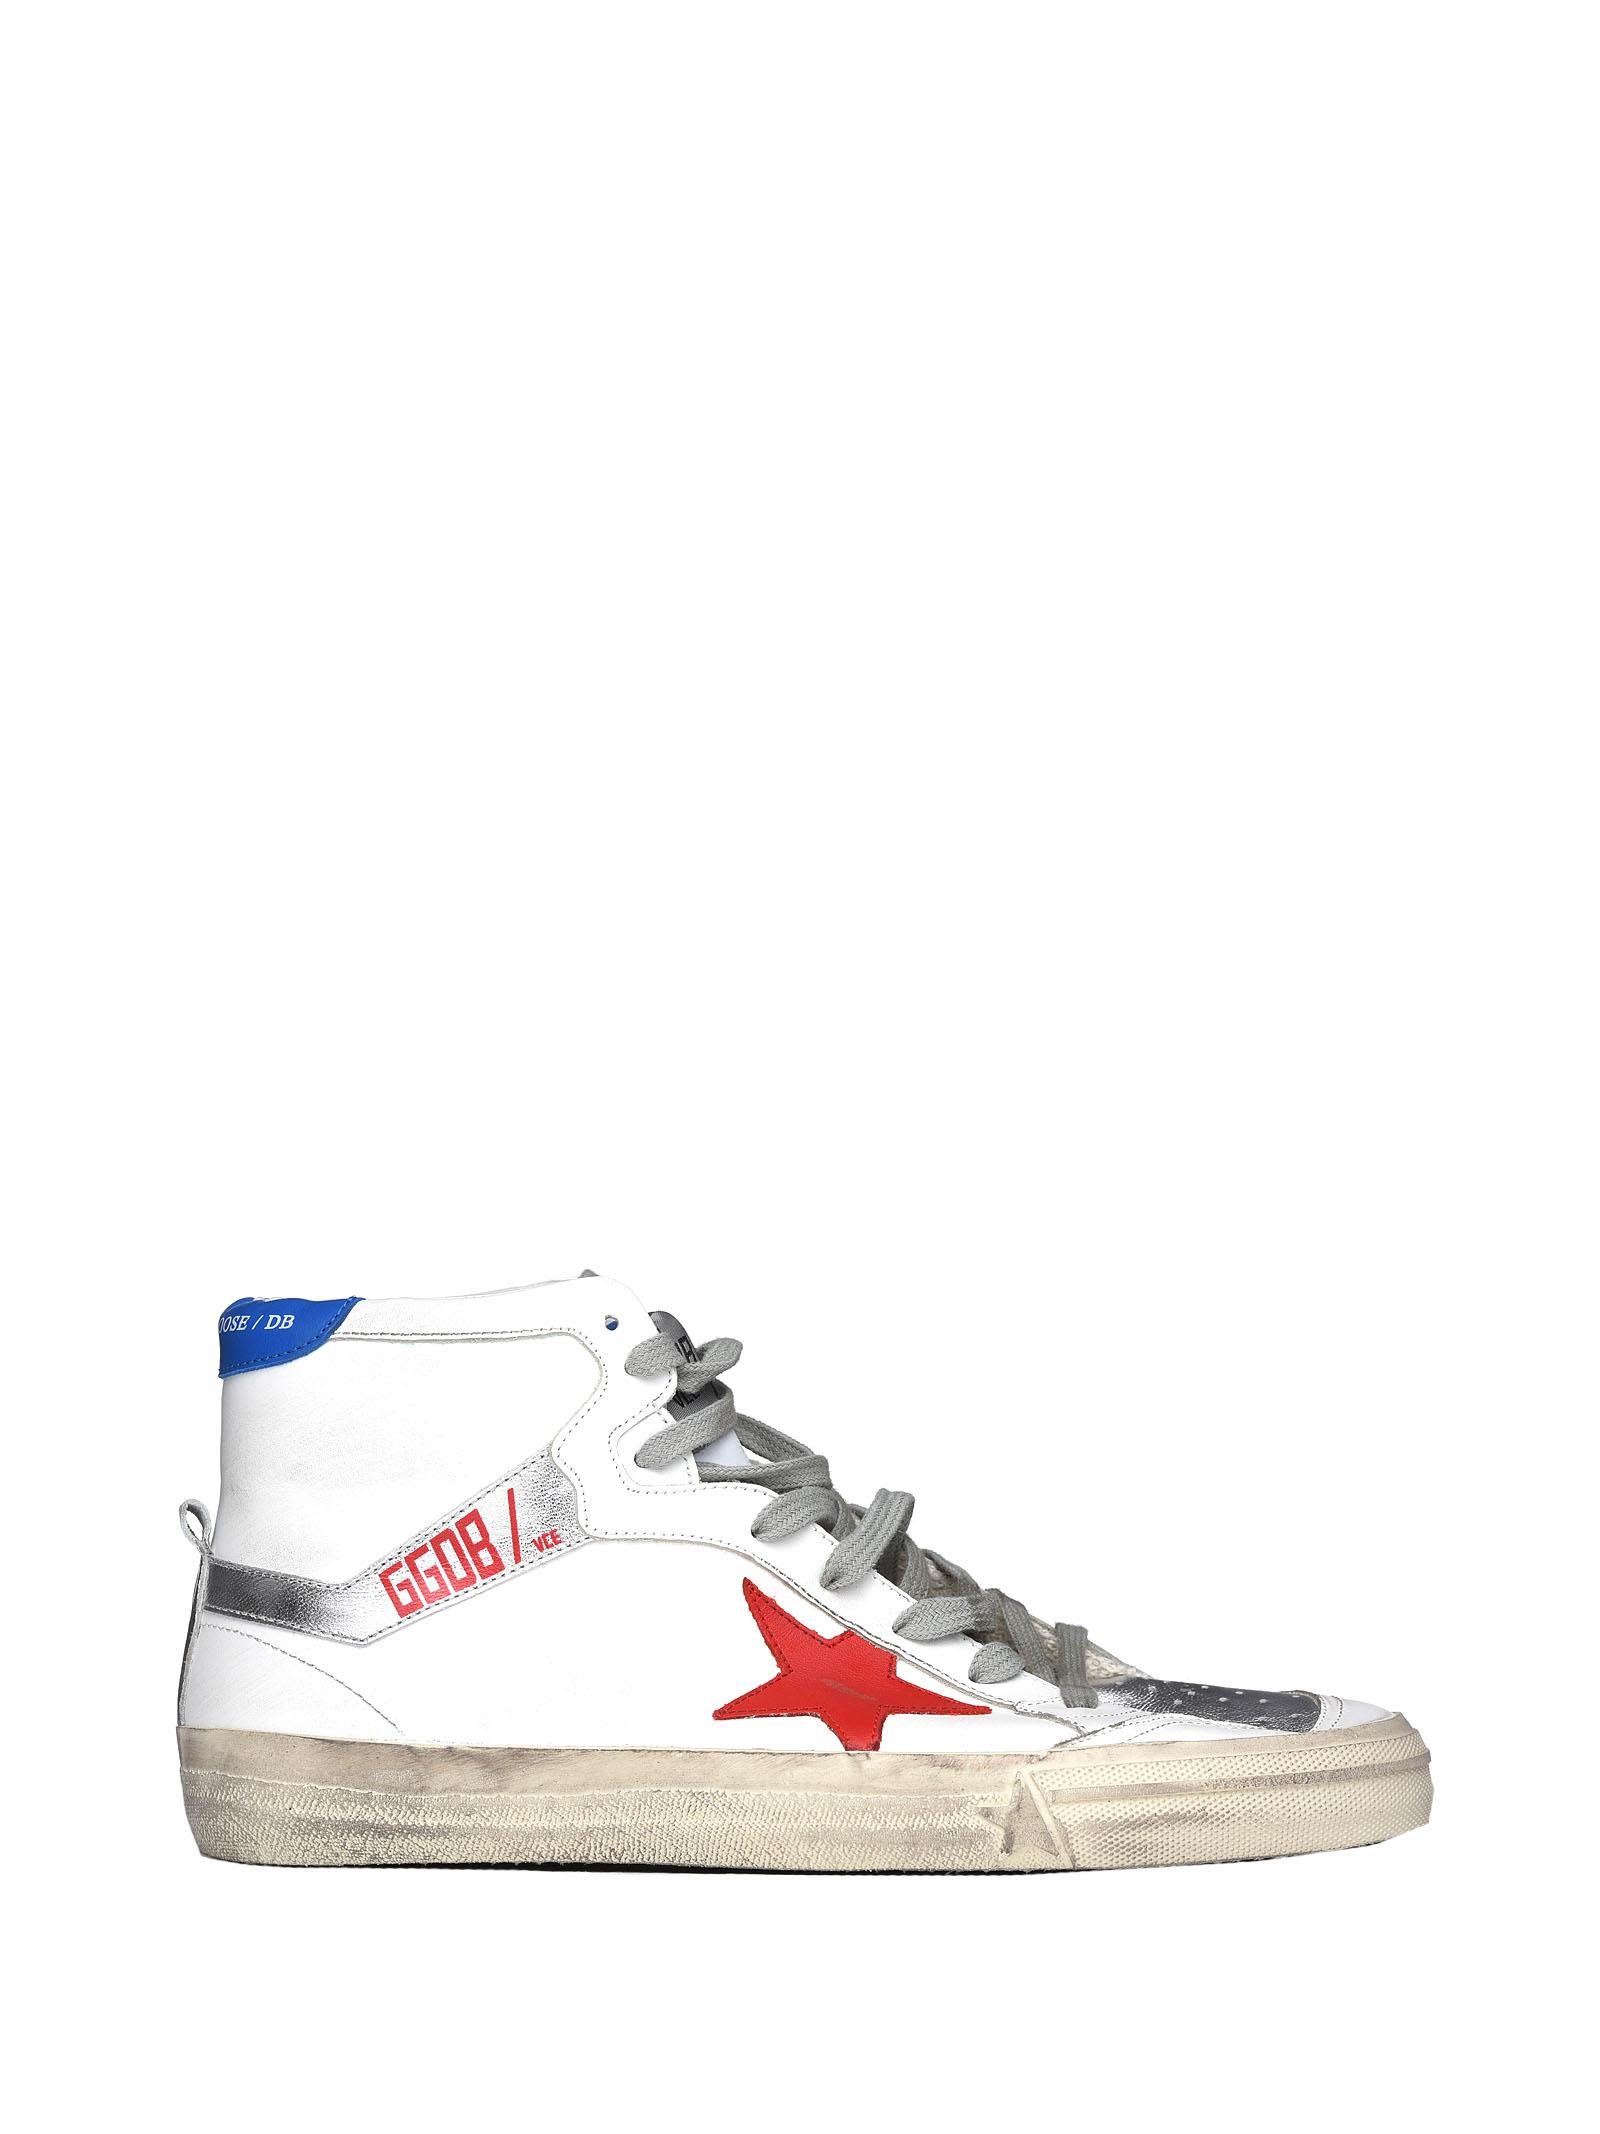 2.12 Sneakers In White, Red And Blue Leather